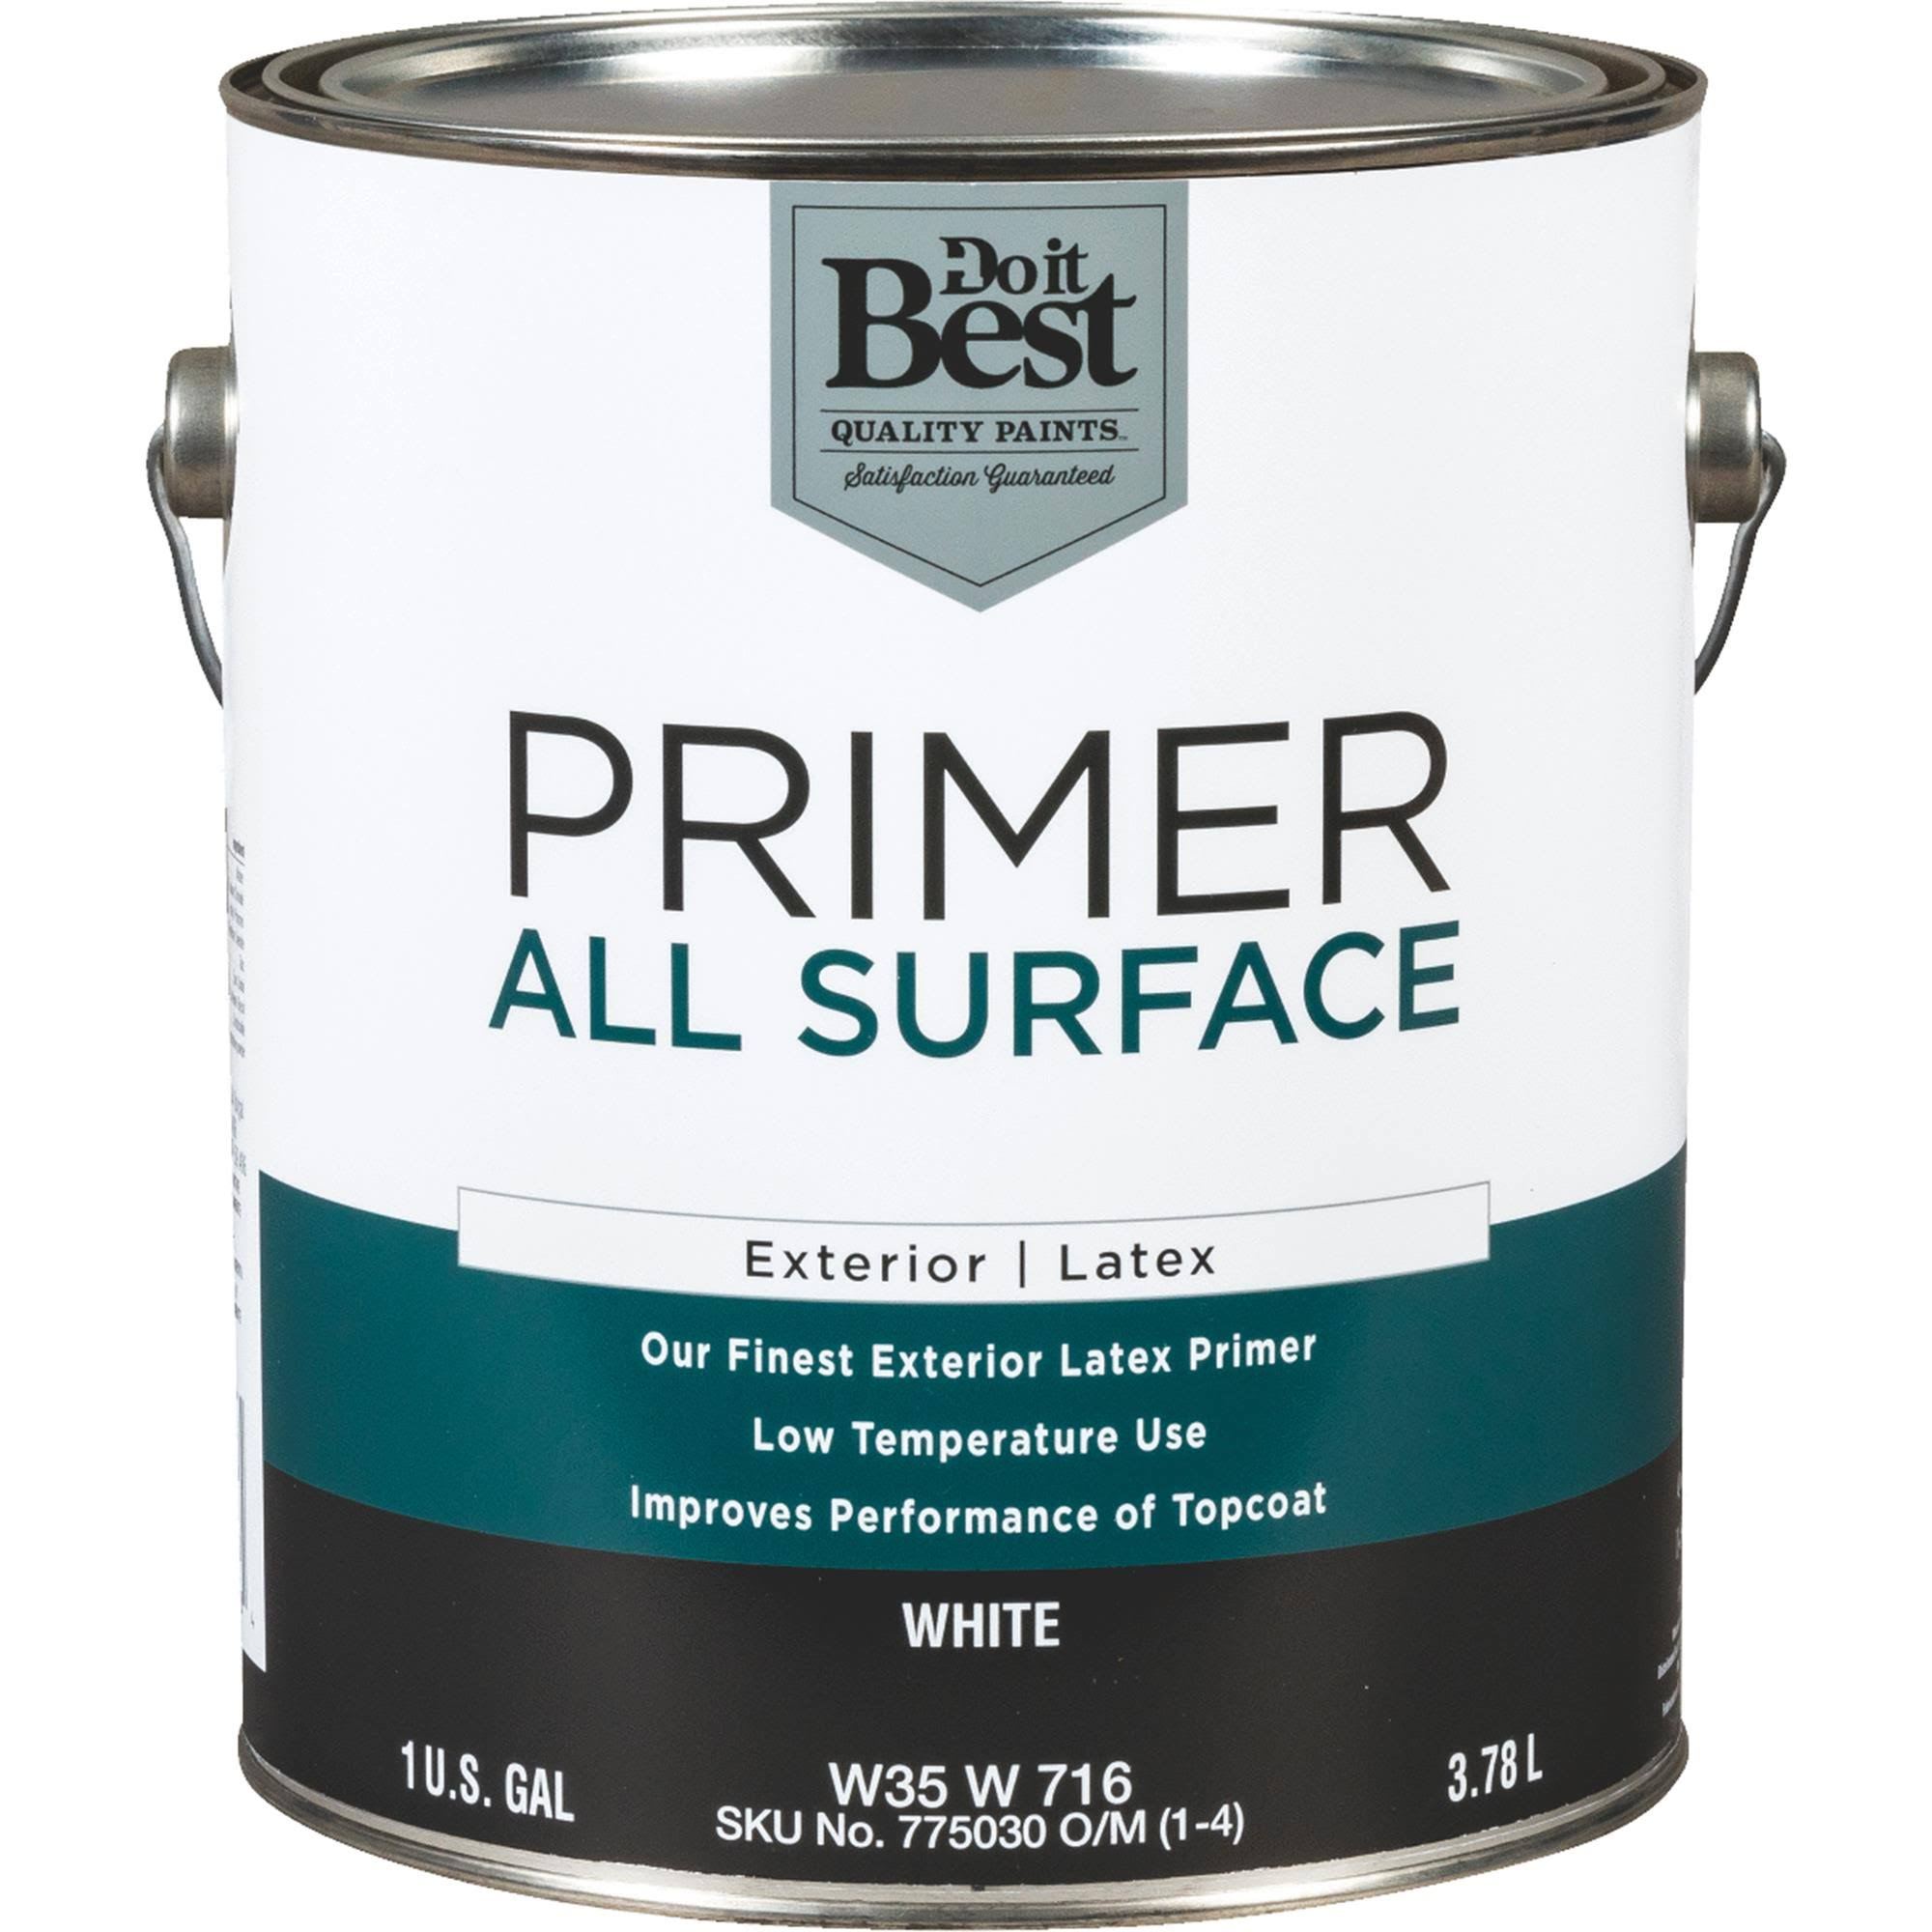 Do It Best Primer Exterior Latex - White, 3.78l